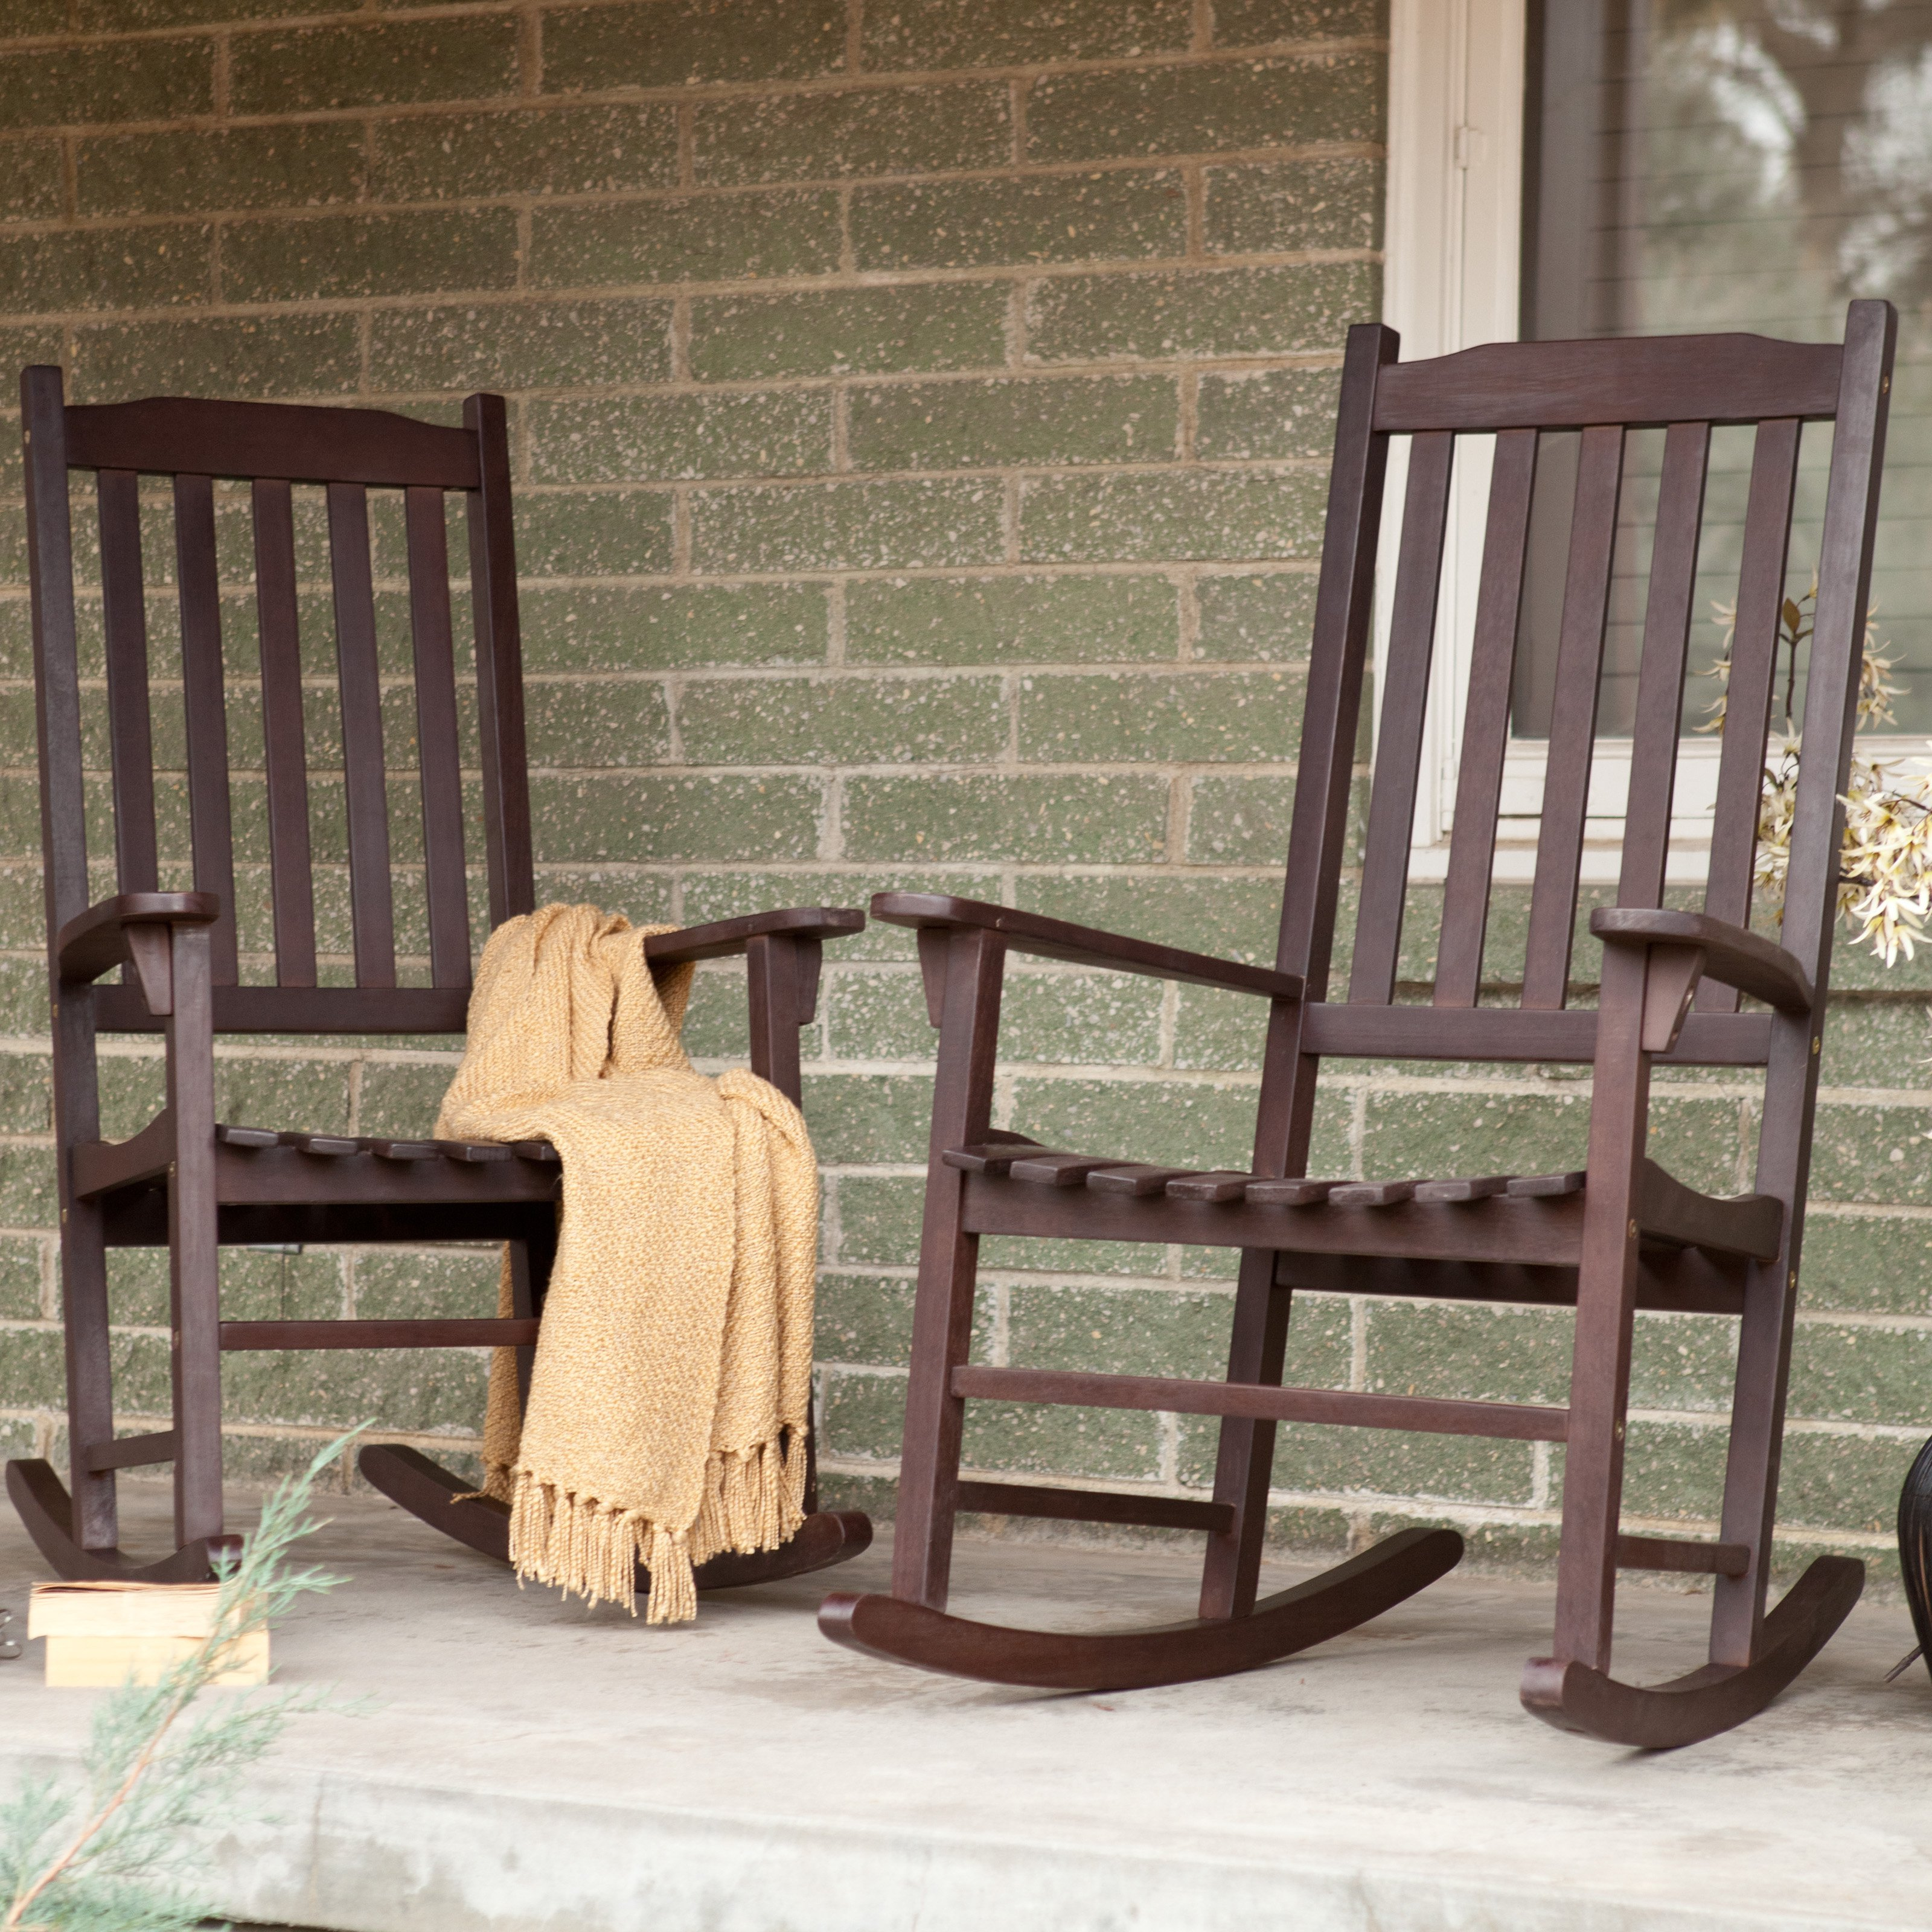 How to choose comfortable outdoor rocking chairs